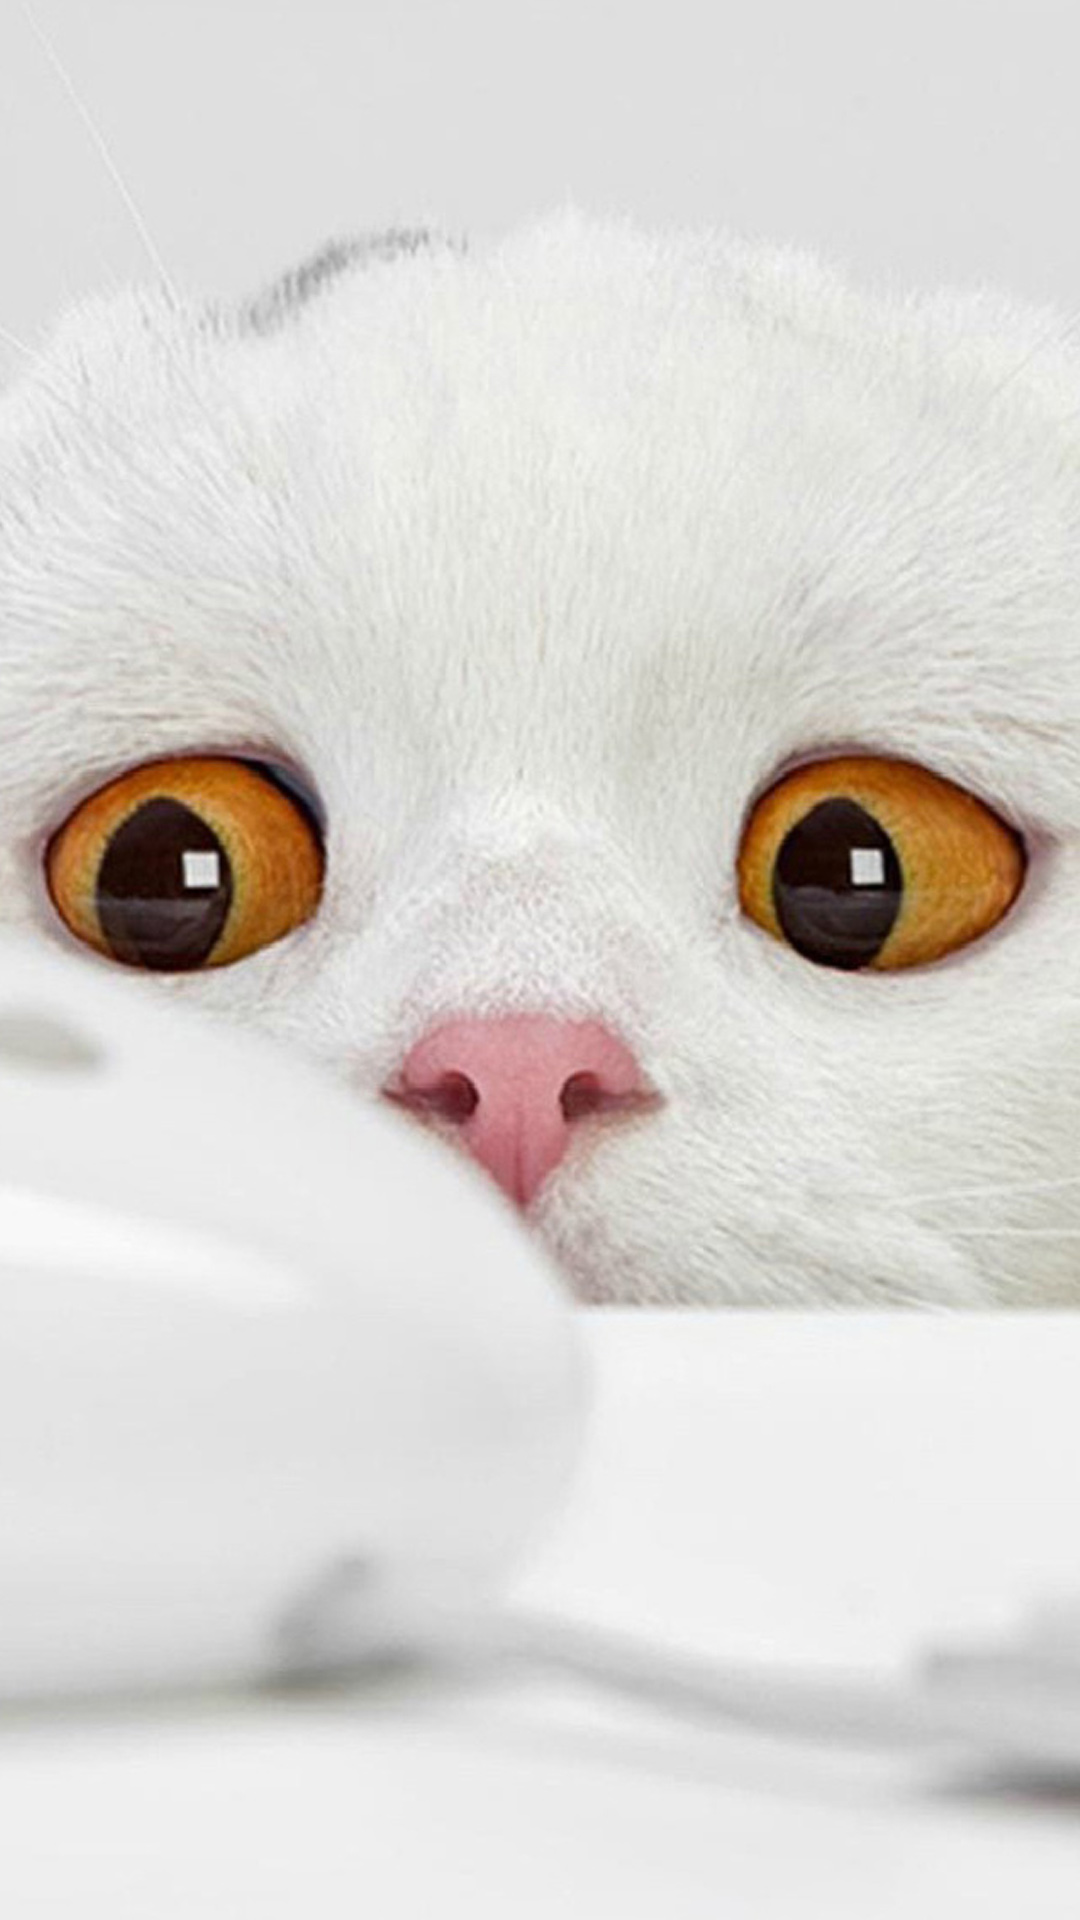 Htc M8 3d Wallpaper Funny White Cat Best Htc One Wallpapers Free And Easy